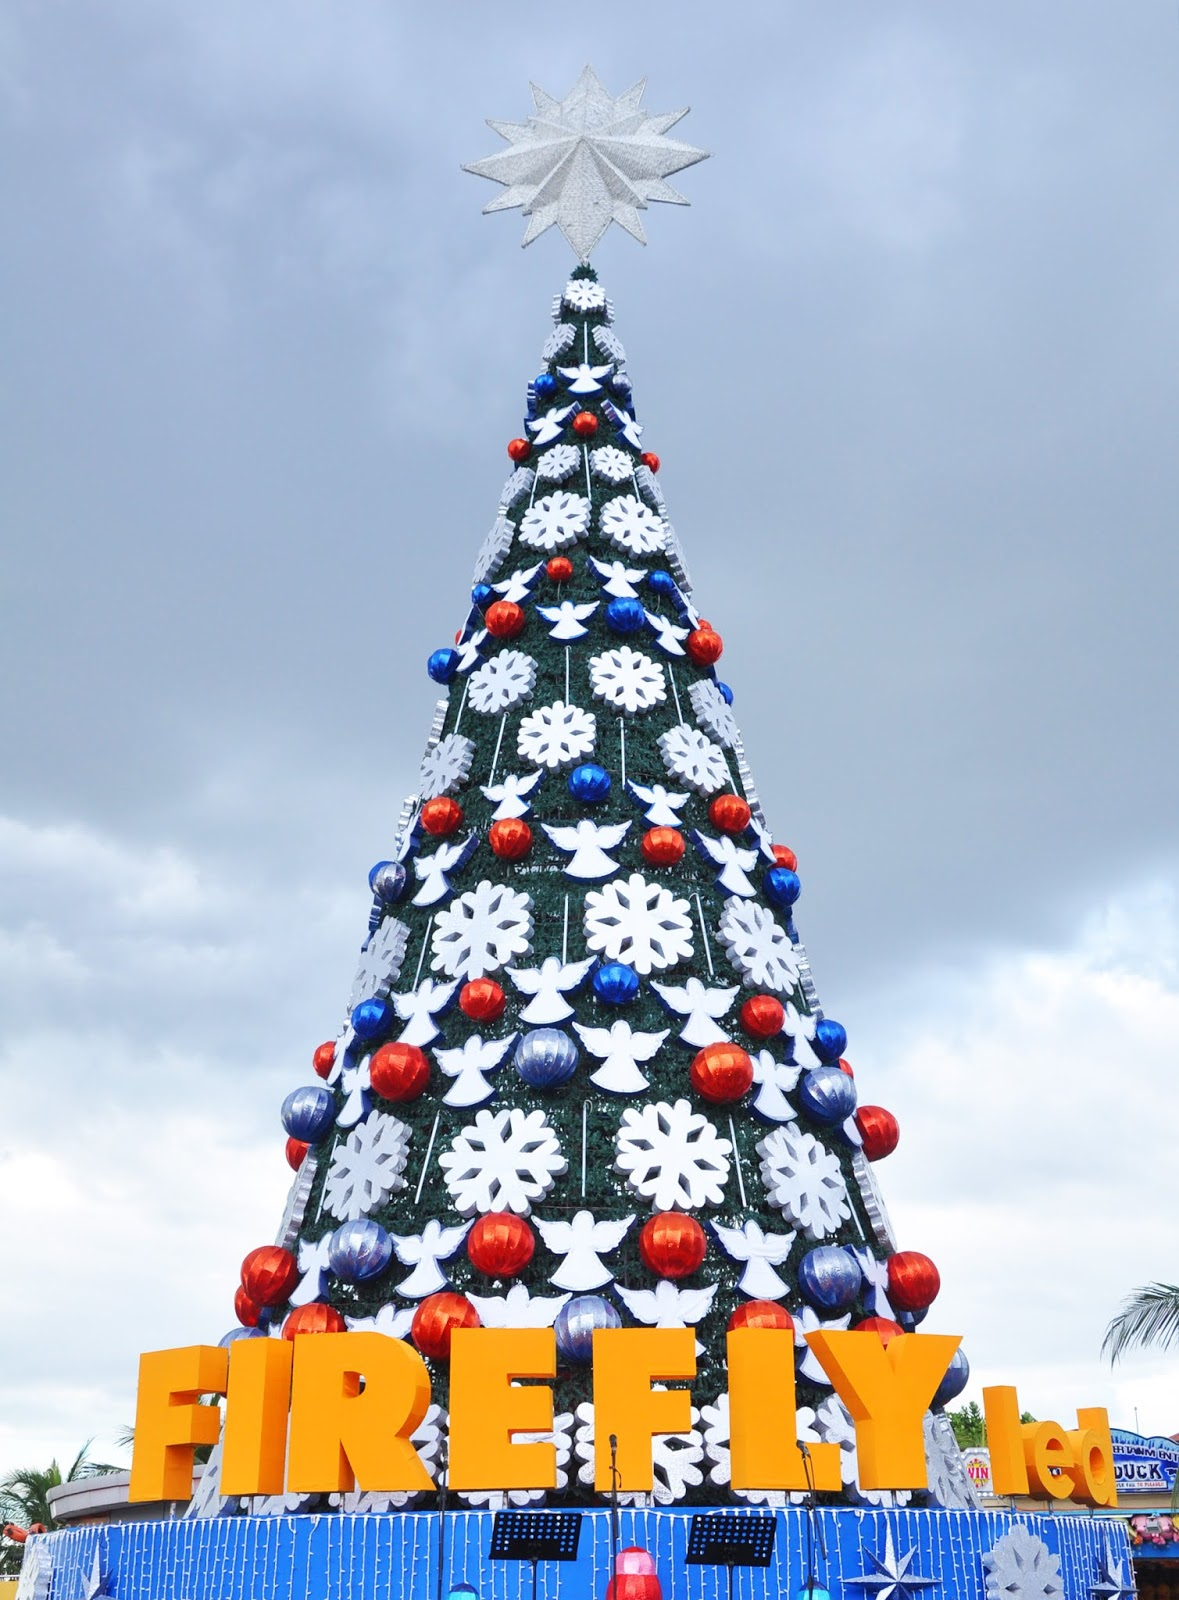 WATCH: #FireflyLED lit up Giant Christmas tree at SM by the Bay in ...